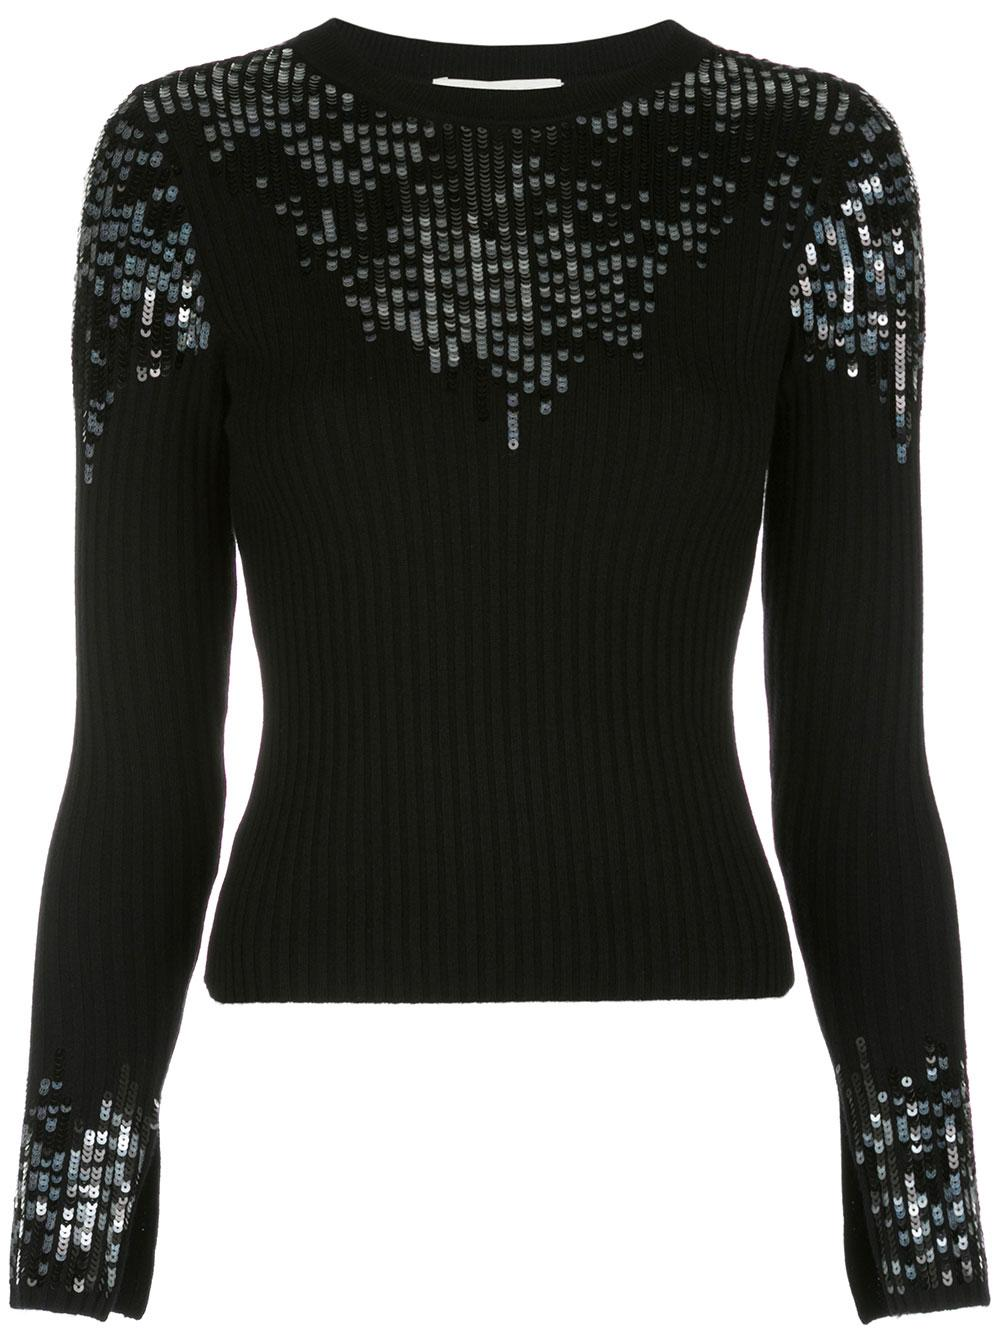 Ribbed Sequin Lace Crew Neck Top